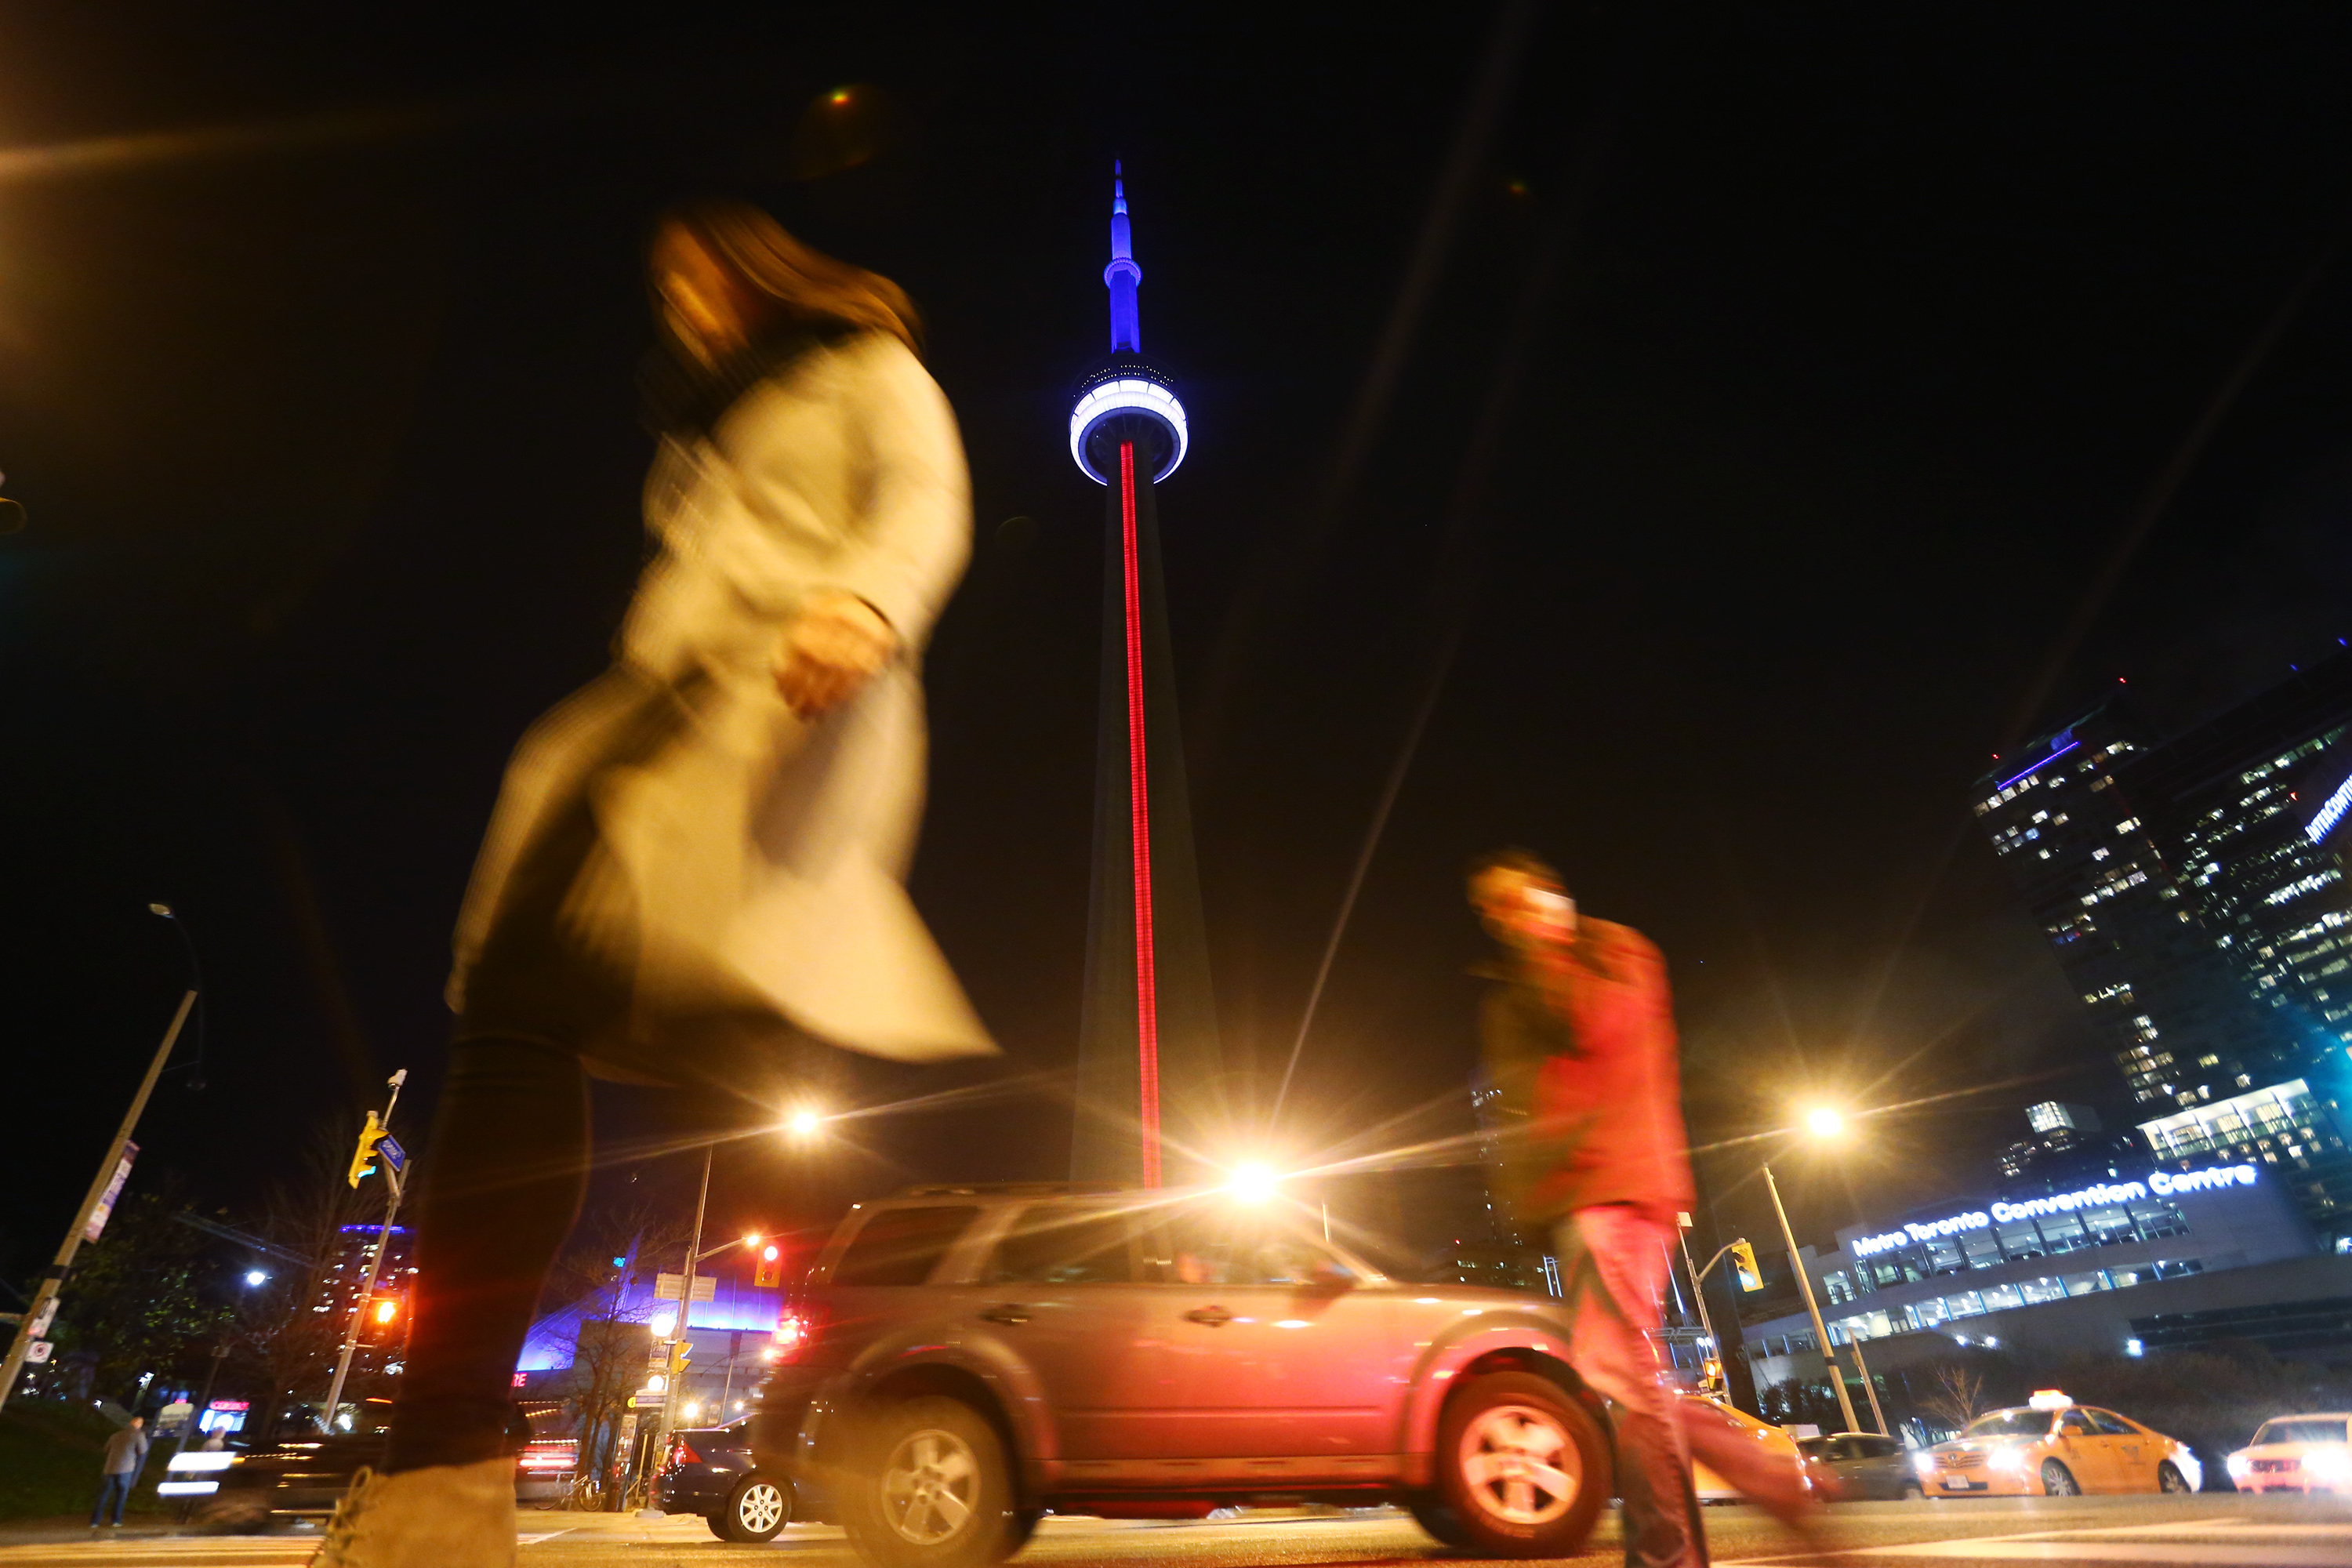 The CN Tower lit up in support of France in the face of tragedy, on Nov. 13, 2015.